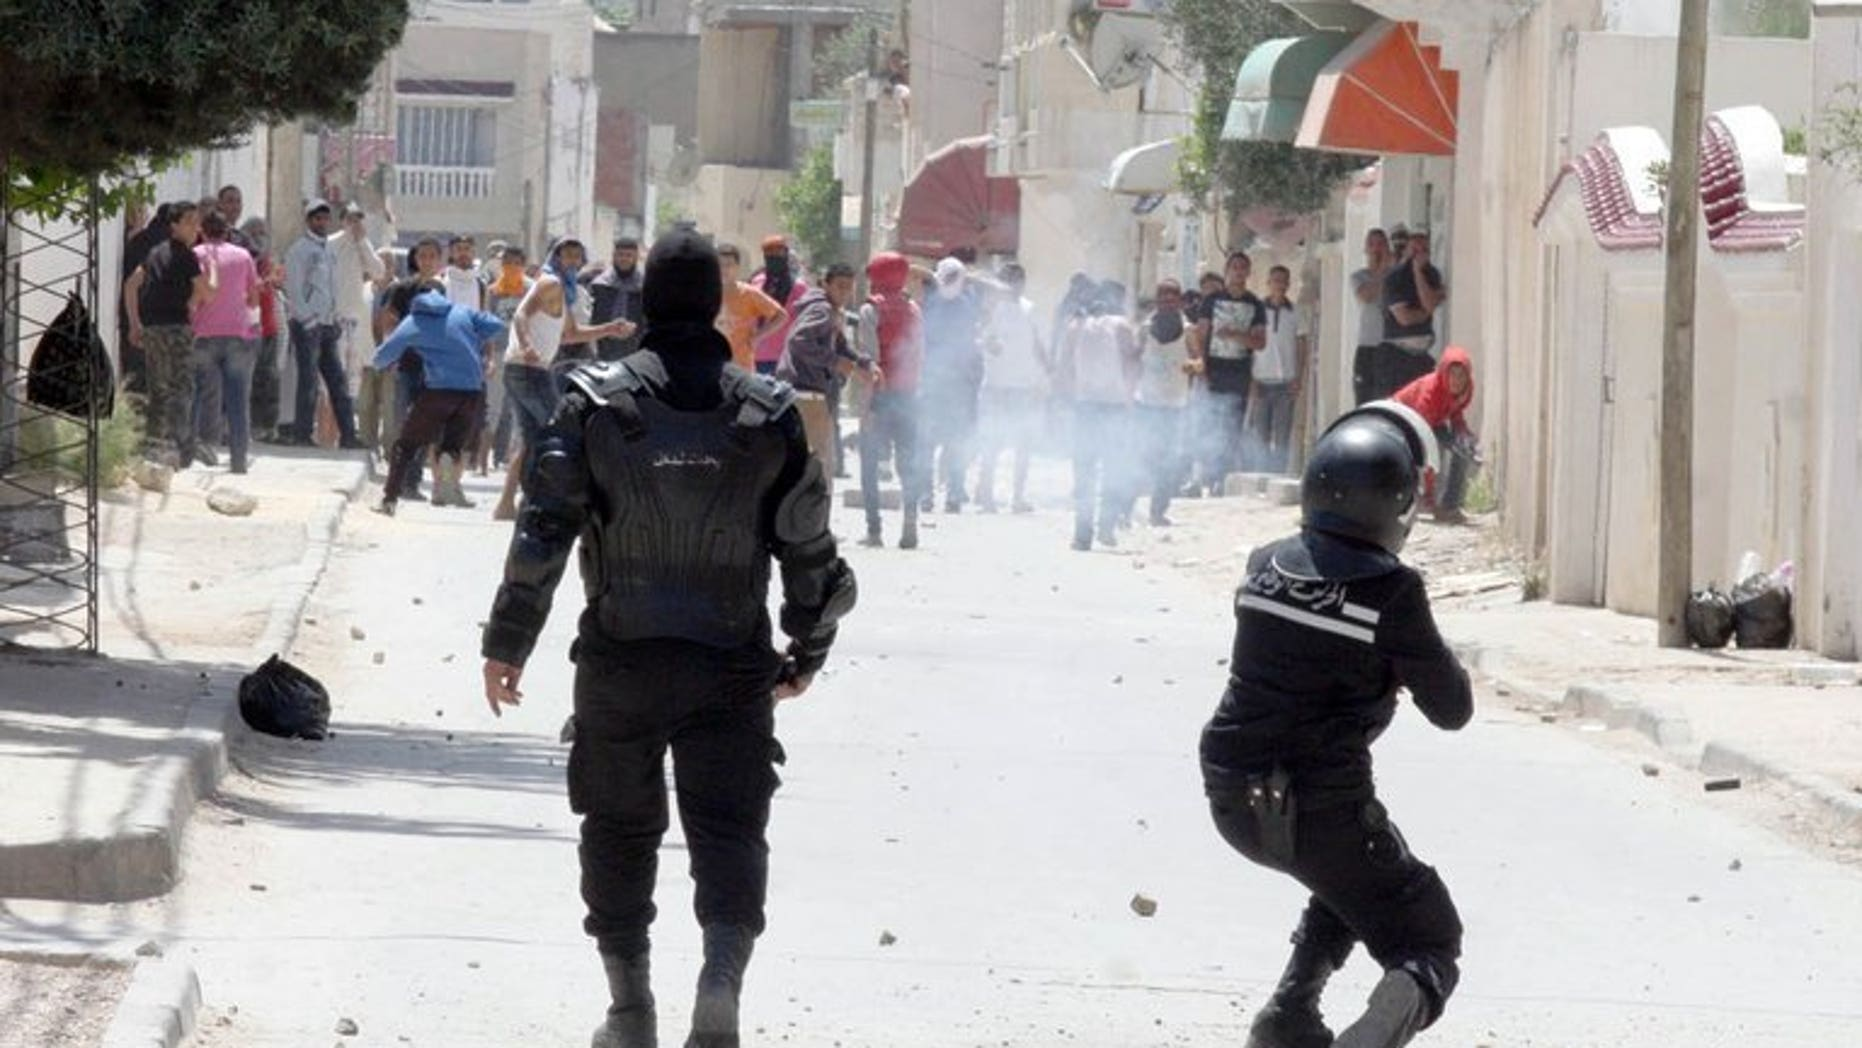 """Police clash with radical Islamists on May 19 in Ettadhamen, a poor neighbourhood west of Tunis. Tunisia's public prosecutor Monday ordered police to investigate an attack on 19 actors by Salafist Muslims, while they decided whether to charge the artists with alleged """"indecency"""", a lawyer for the drama group said."""